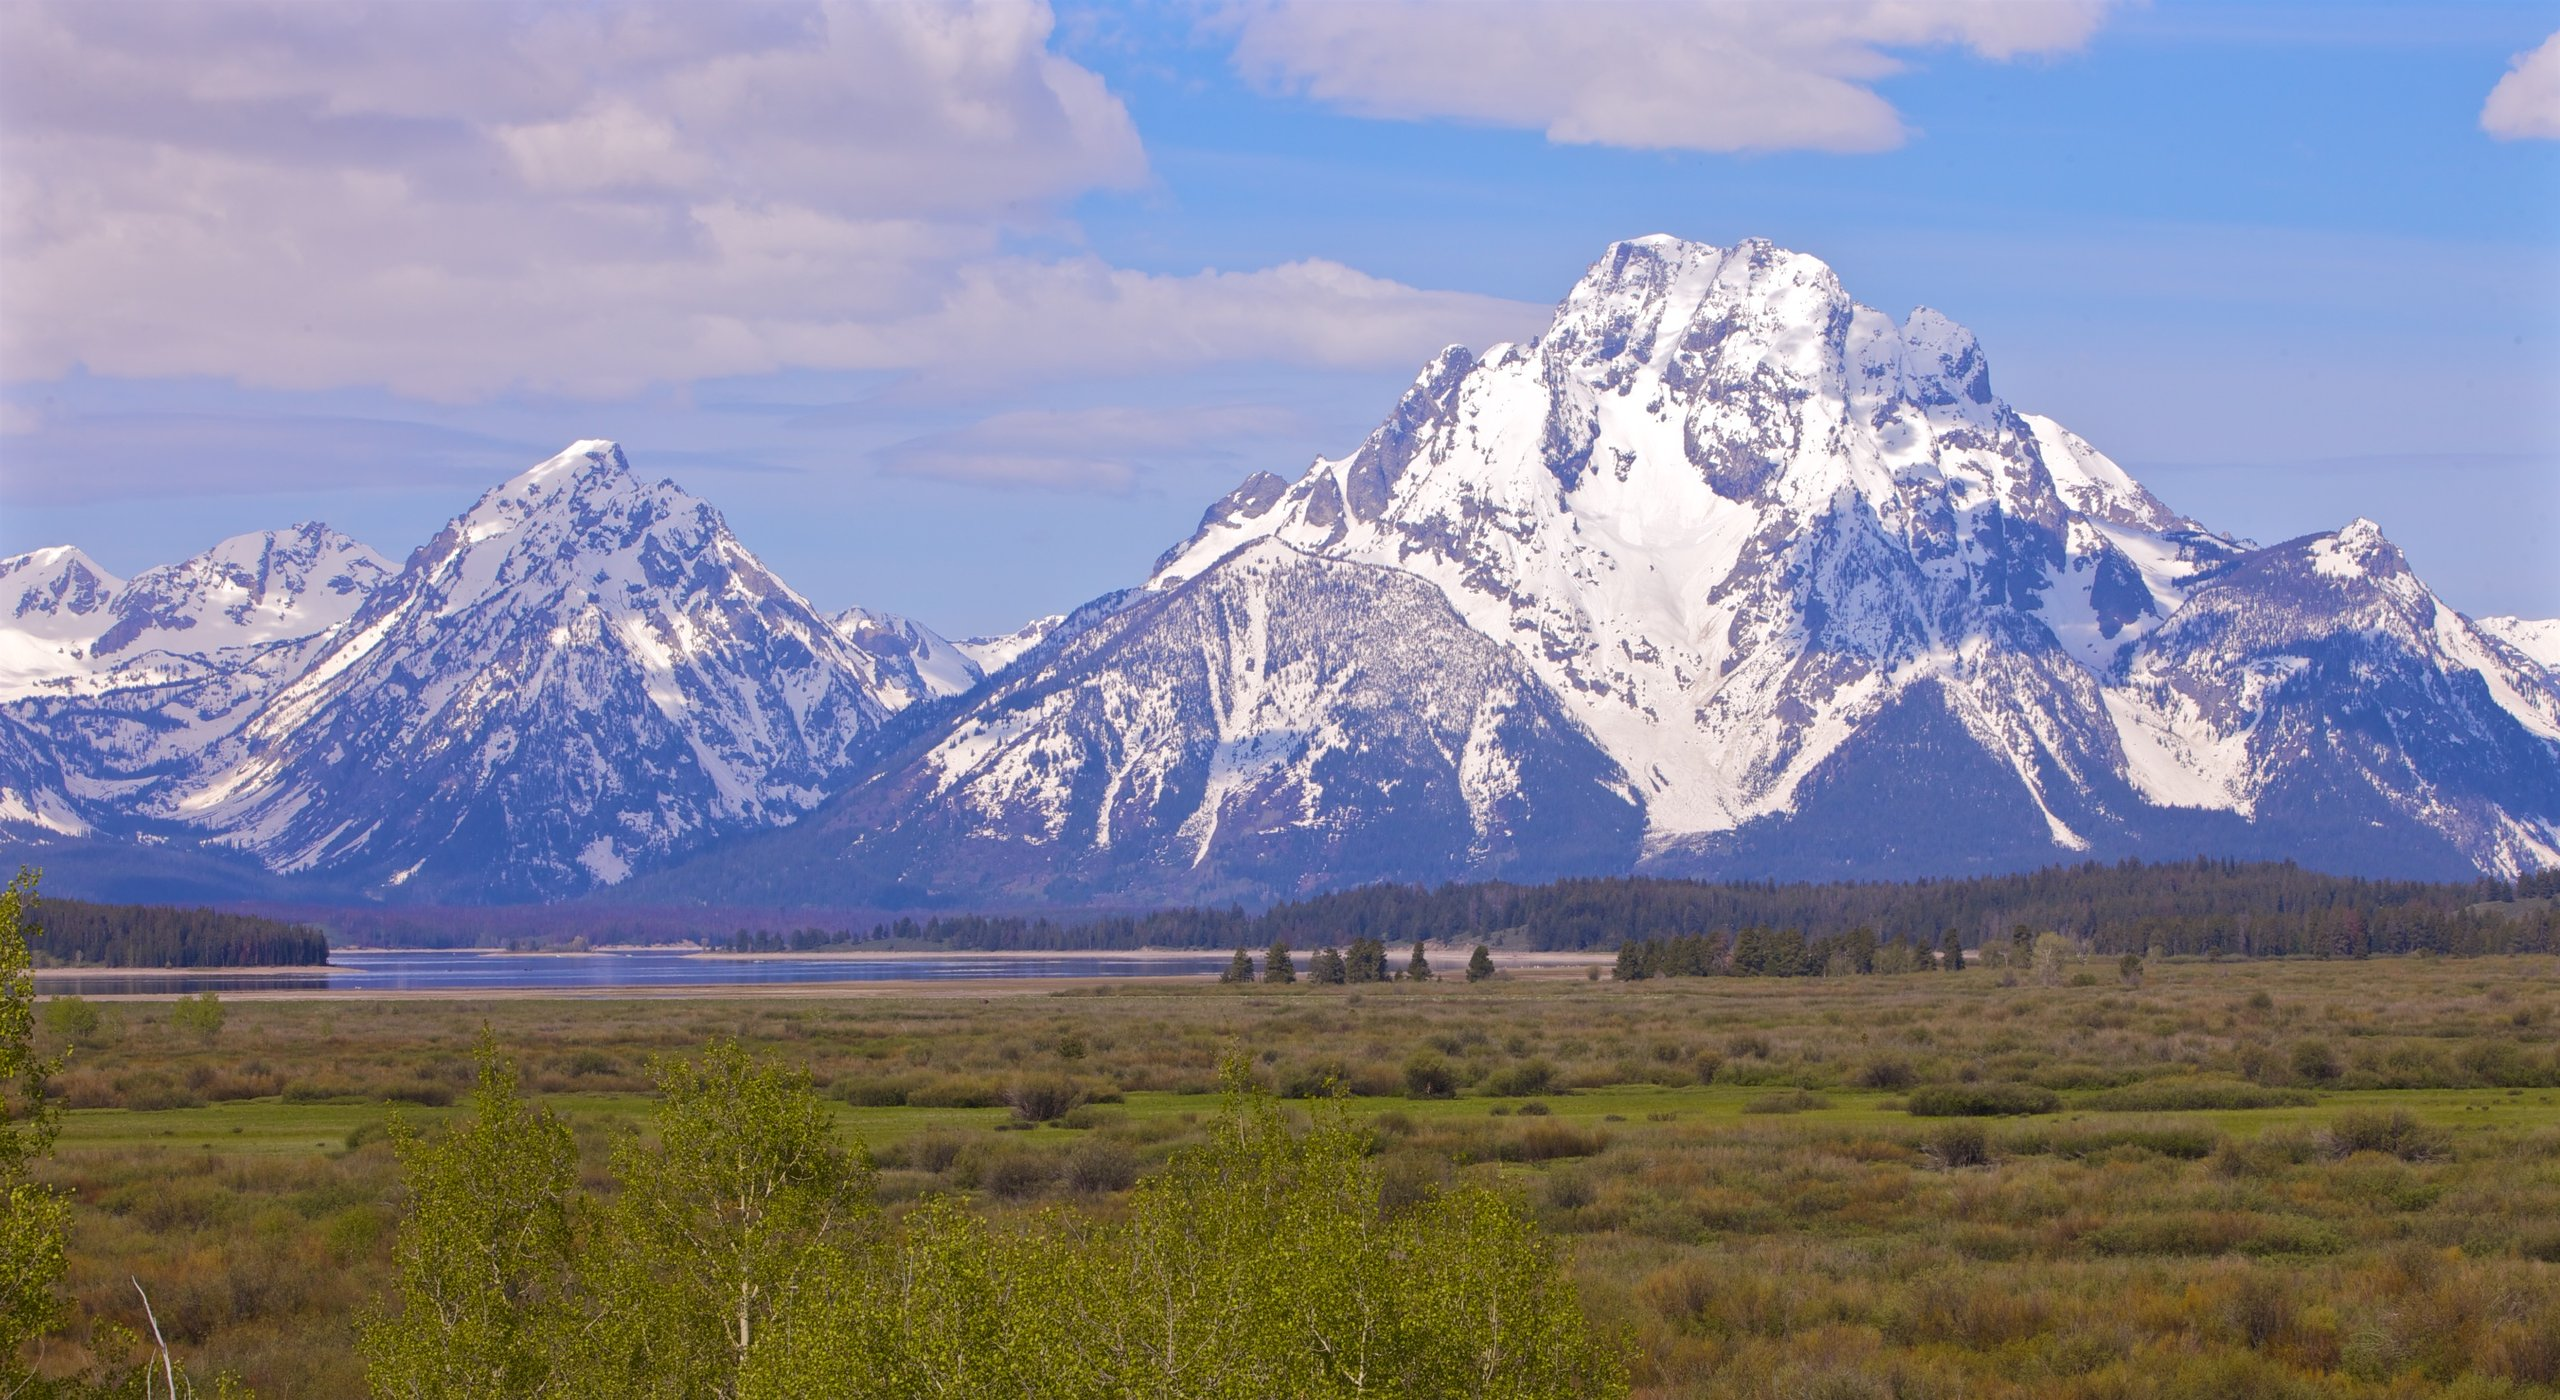 Top 10 Hotels Closest to Grand Teton National Park in ... Map Of Grand Teton Hotels on map of aspen, map of teton range, map of yellowstone, map of mt. mckinley, map of capitol reef, map of jasper, map of isle royale, map of denali, map of teton mountains, map of kobuk valley, map of san juan mountains, map of niagara falls, map of mt. rainier, map of travel, map of salt lake city, map of sangre de cristo mountains, map of north cascades, map of snow, map of titicaca, map of wyoming,